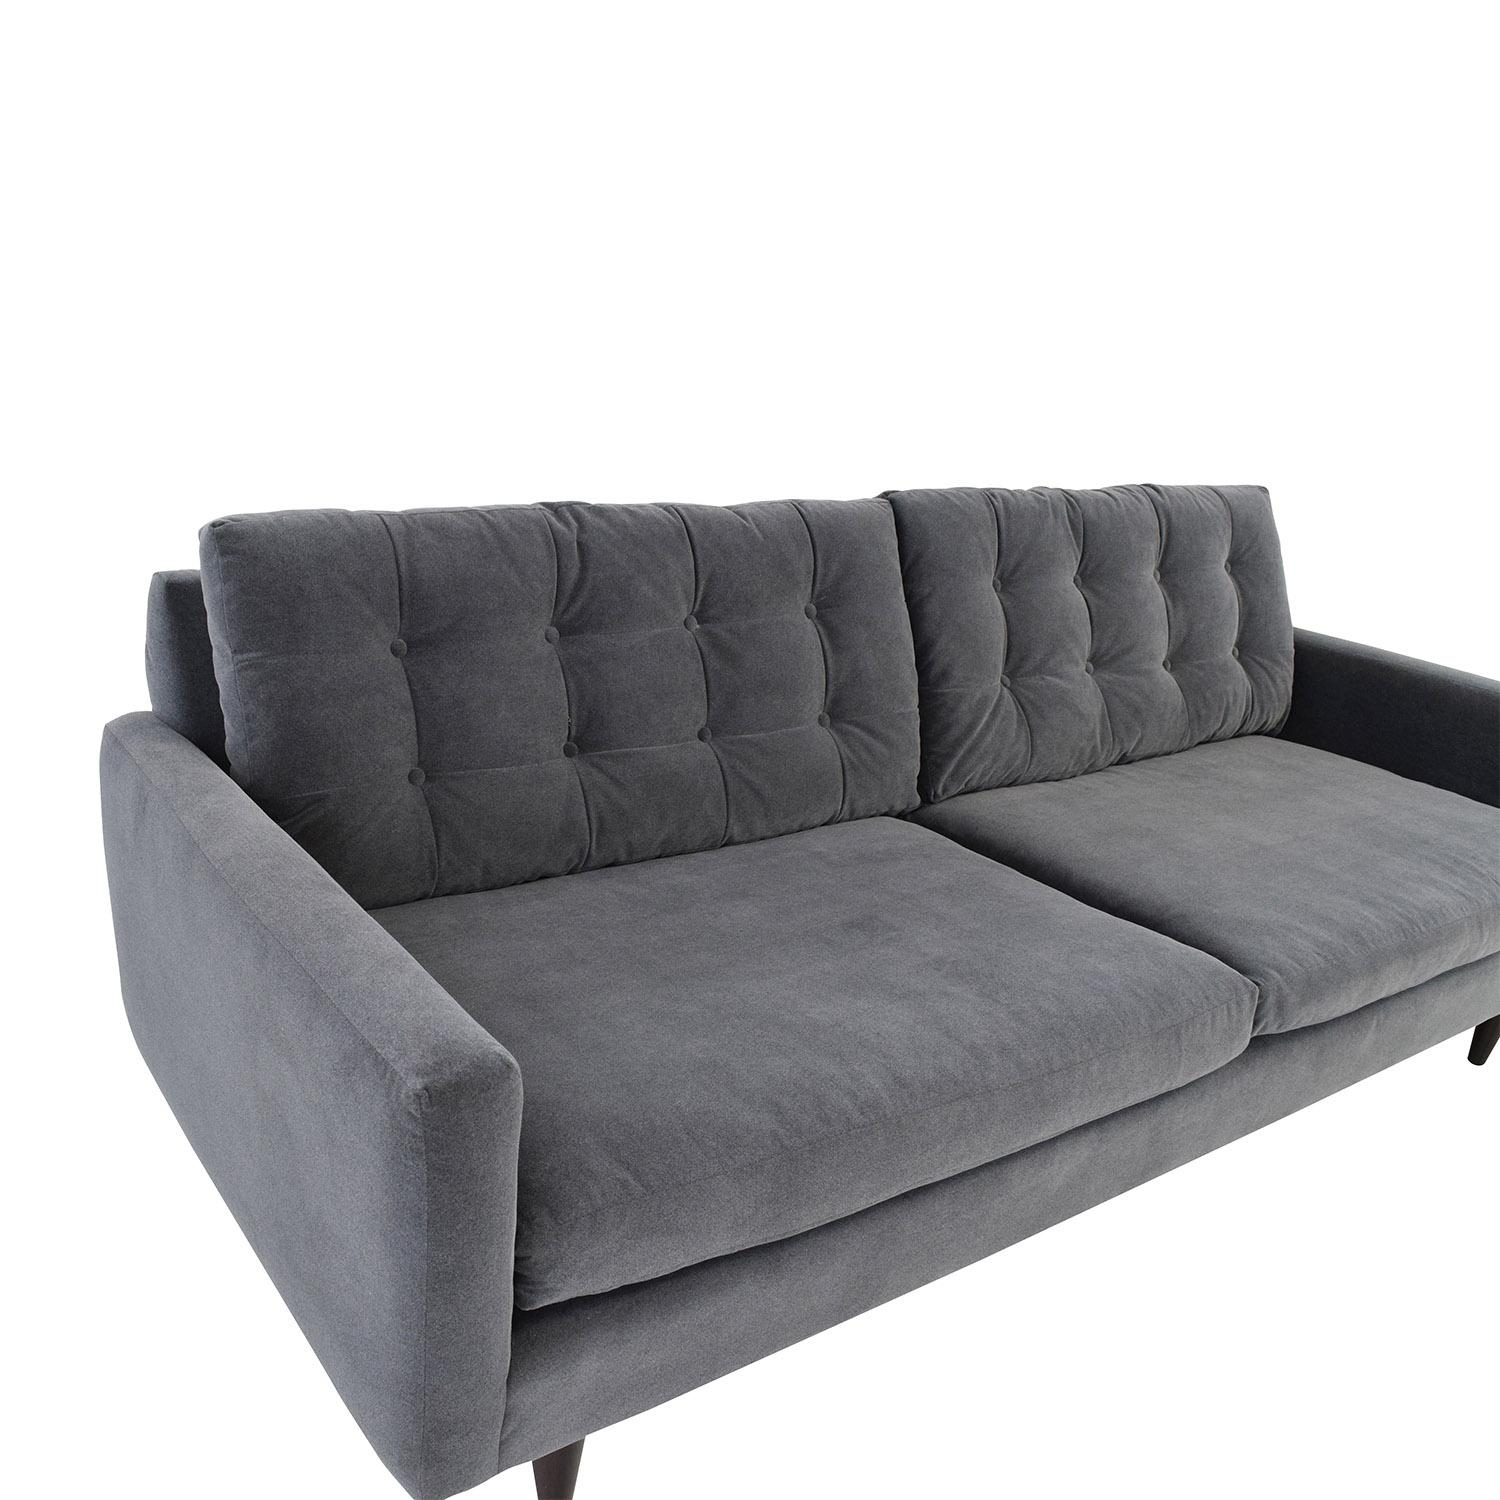 62% Off – Crate And Barrel Crate & Barrel Petrie Mid Century Grey Pertaining To Crate And Barrel Futon Sofas (Image 2 of 20)